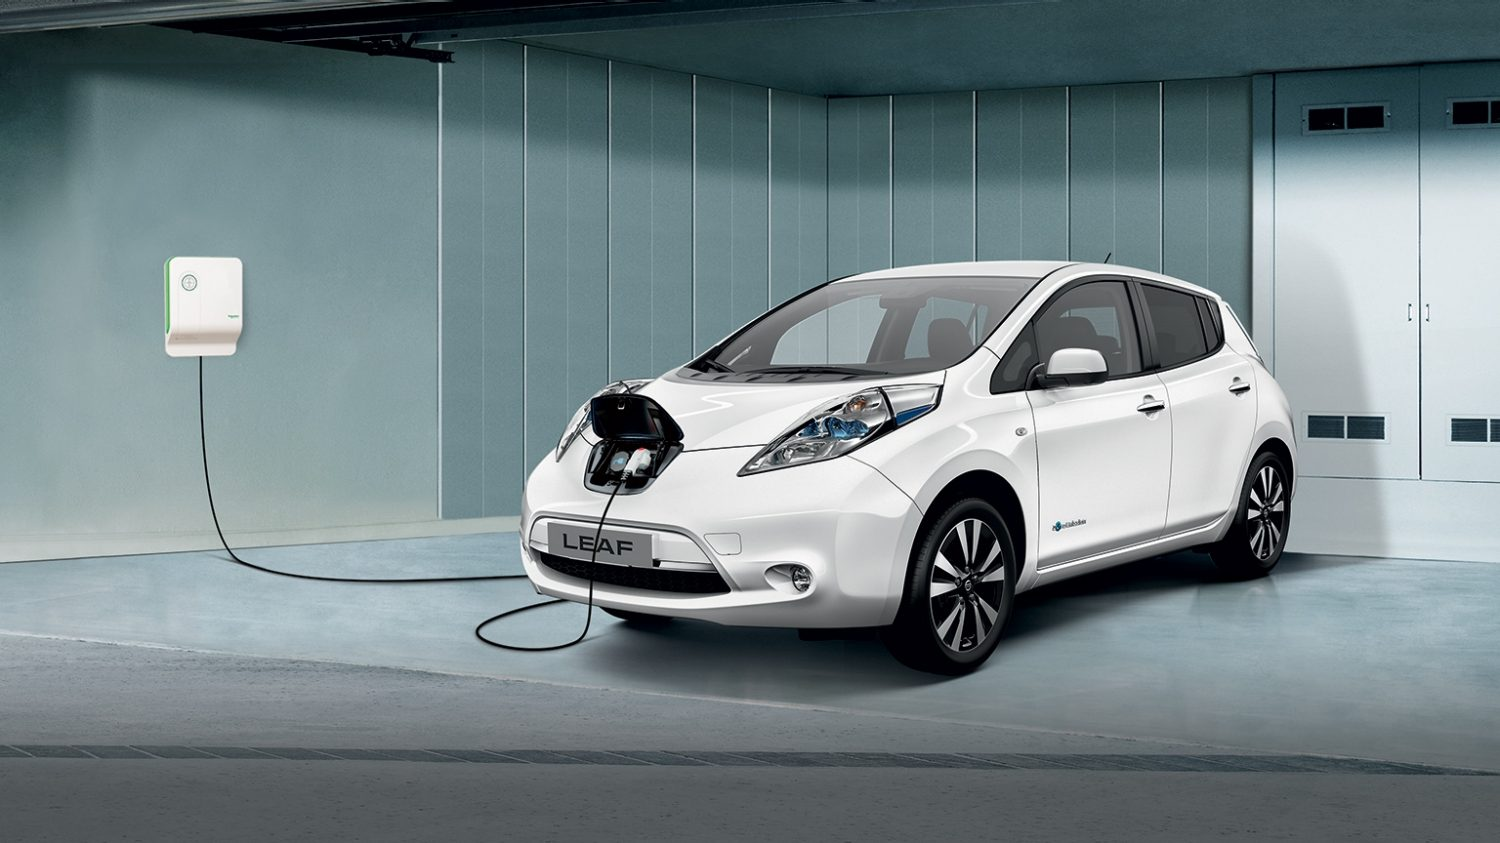 nissan leaf voiture 100 lectrique citadine nissan. Black Bedroom Furniture Sets. Home Design Ideas